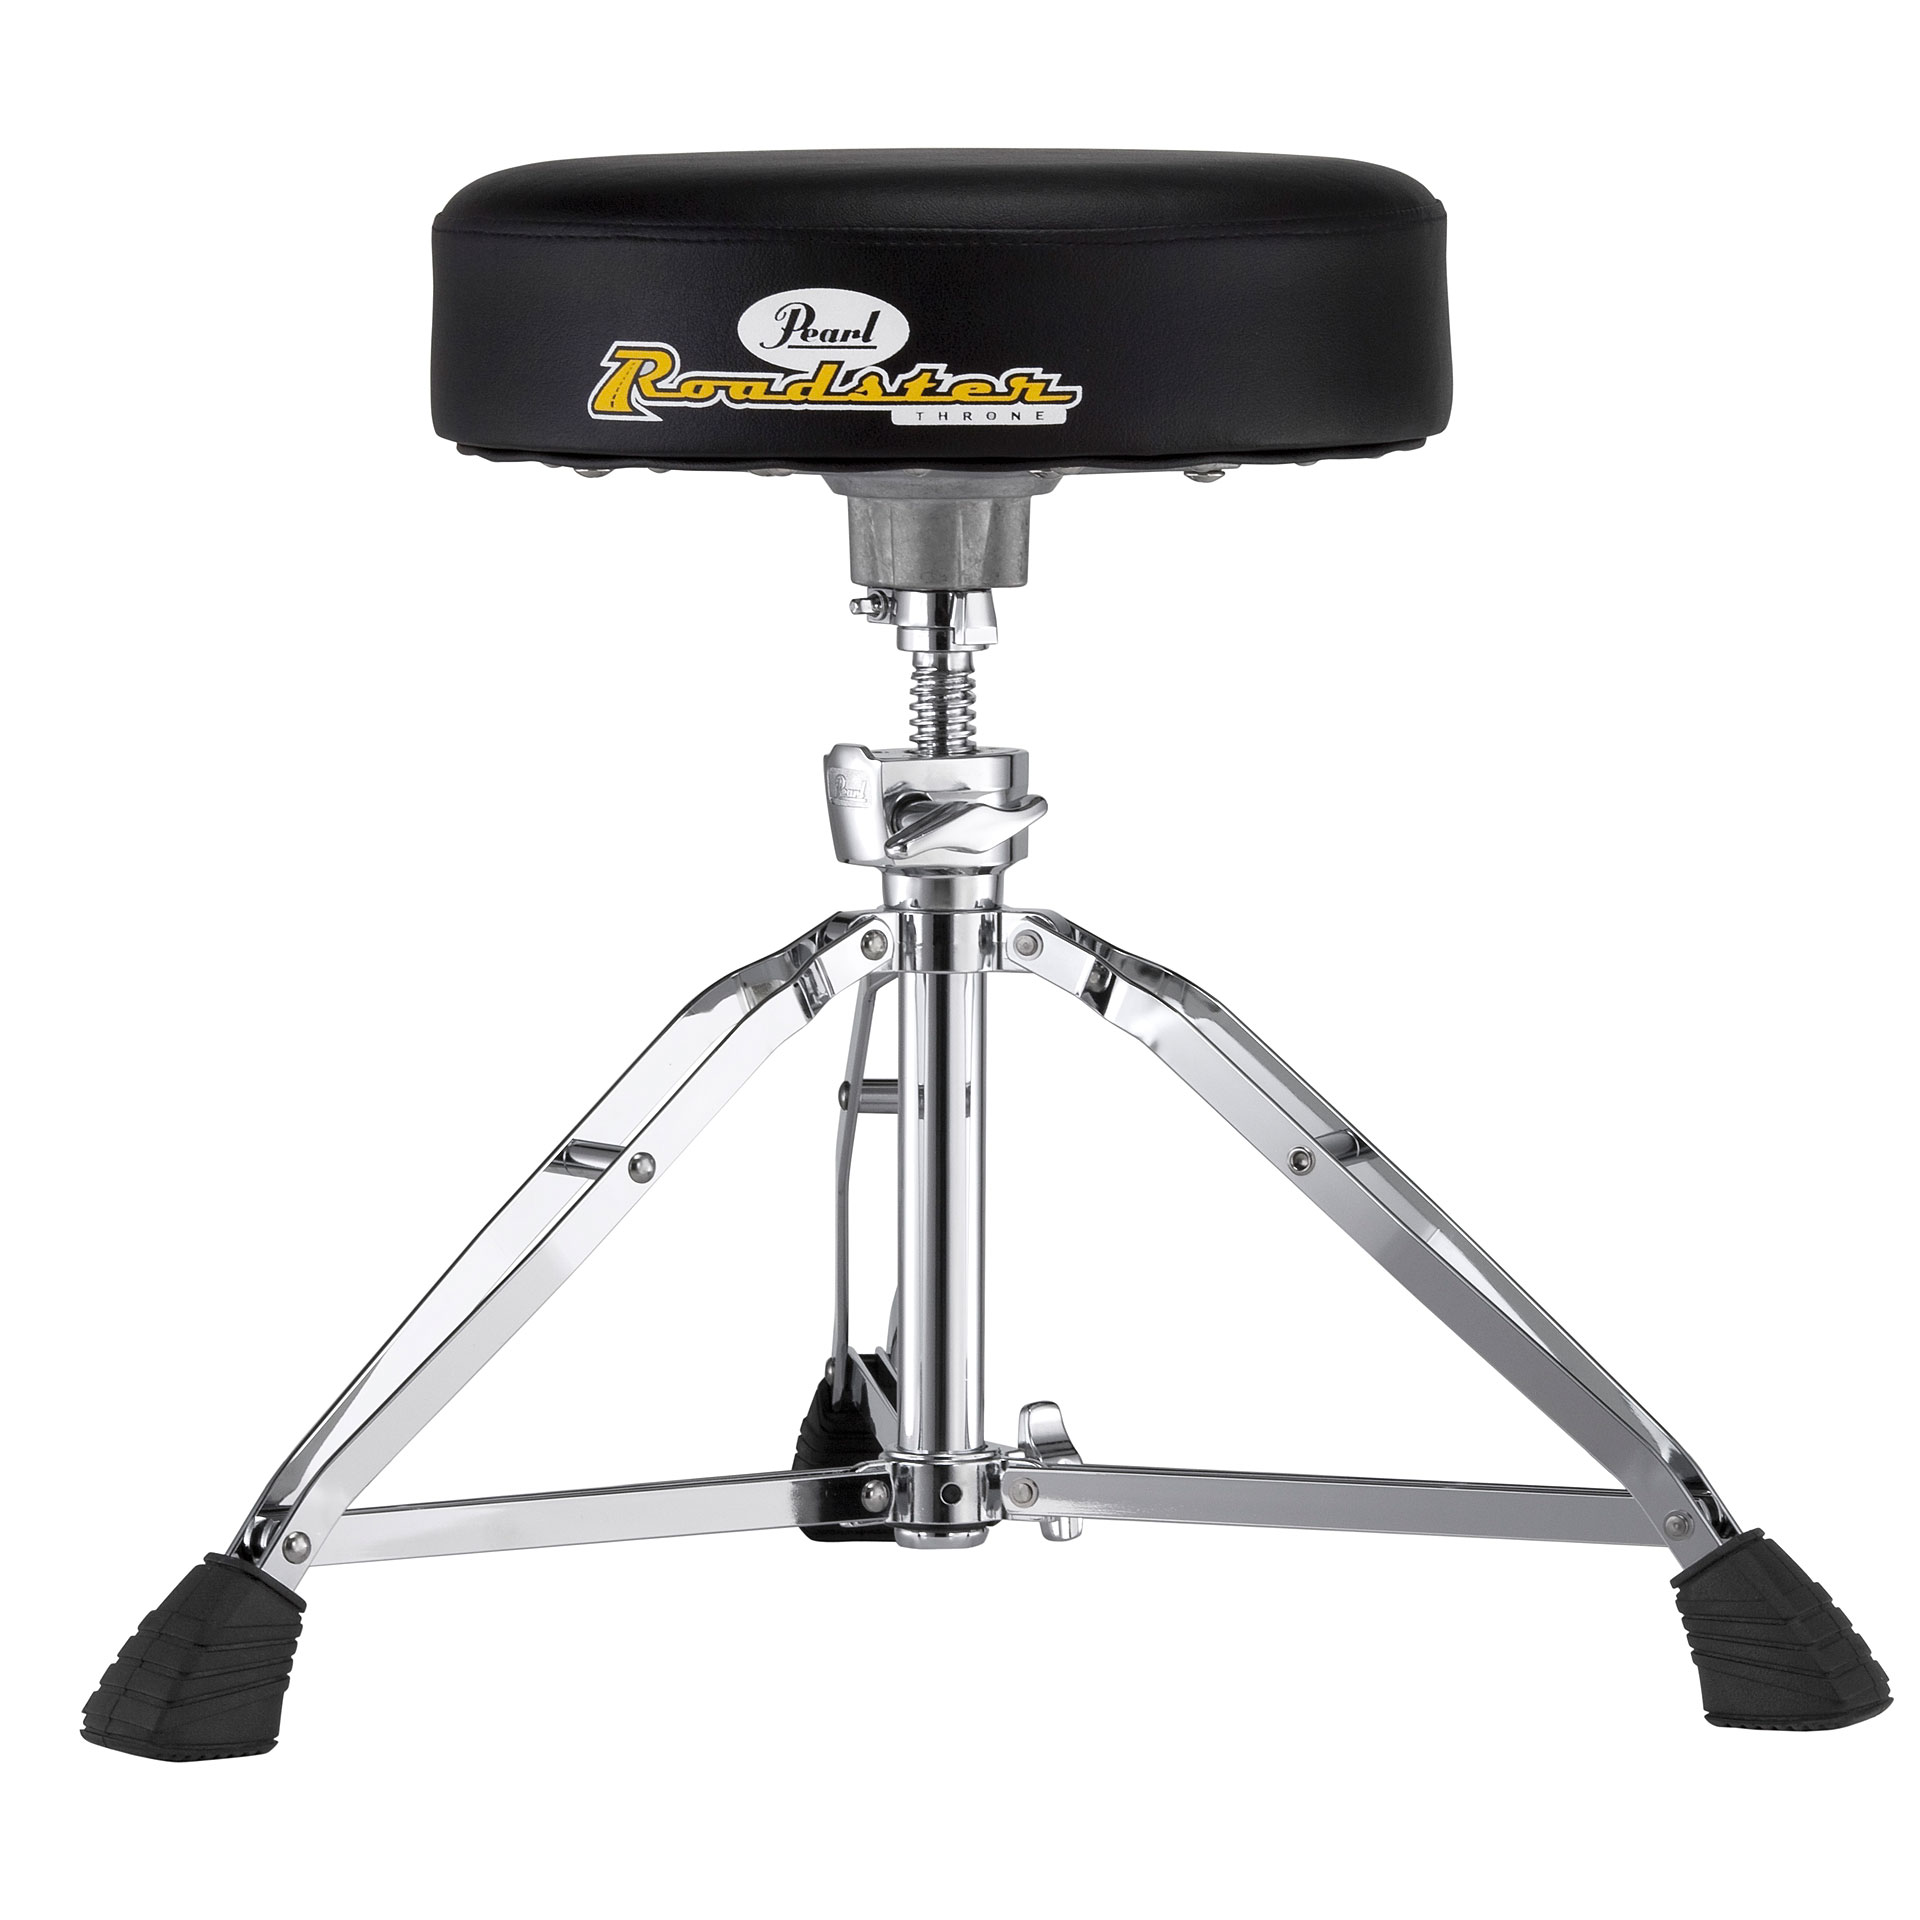 Pearl Roadster D 1000sn 171 Drum Throne